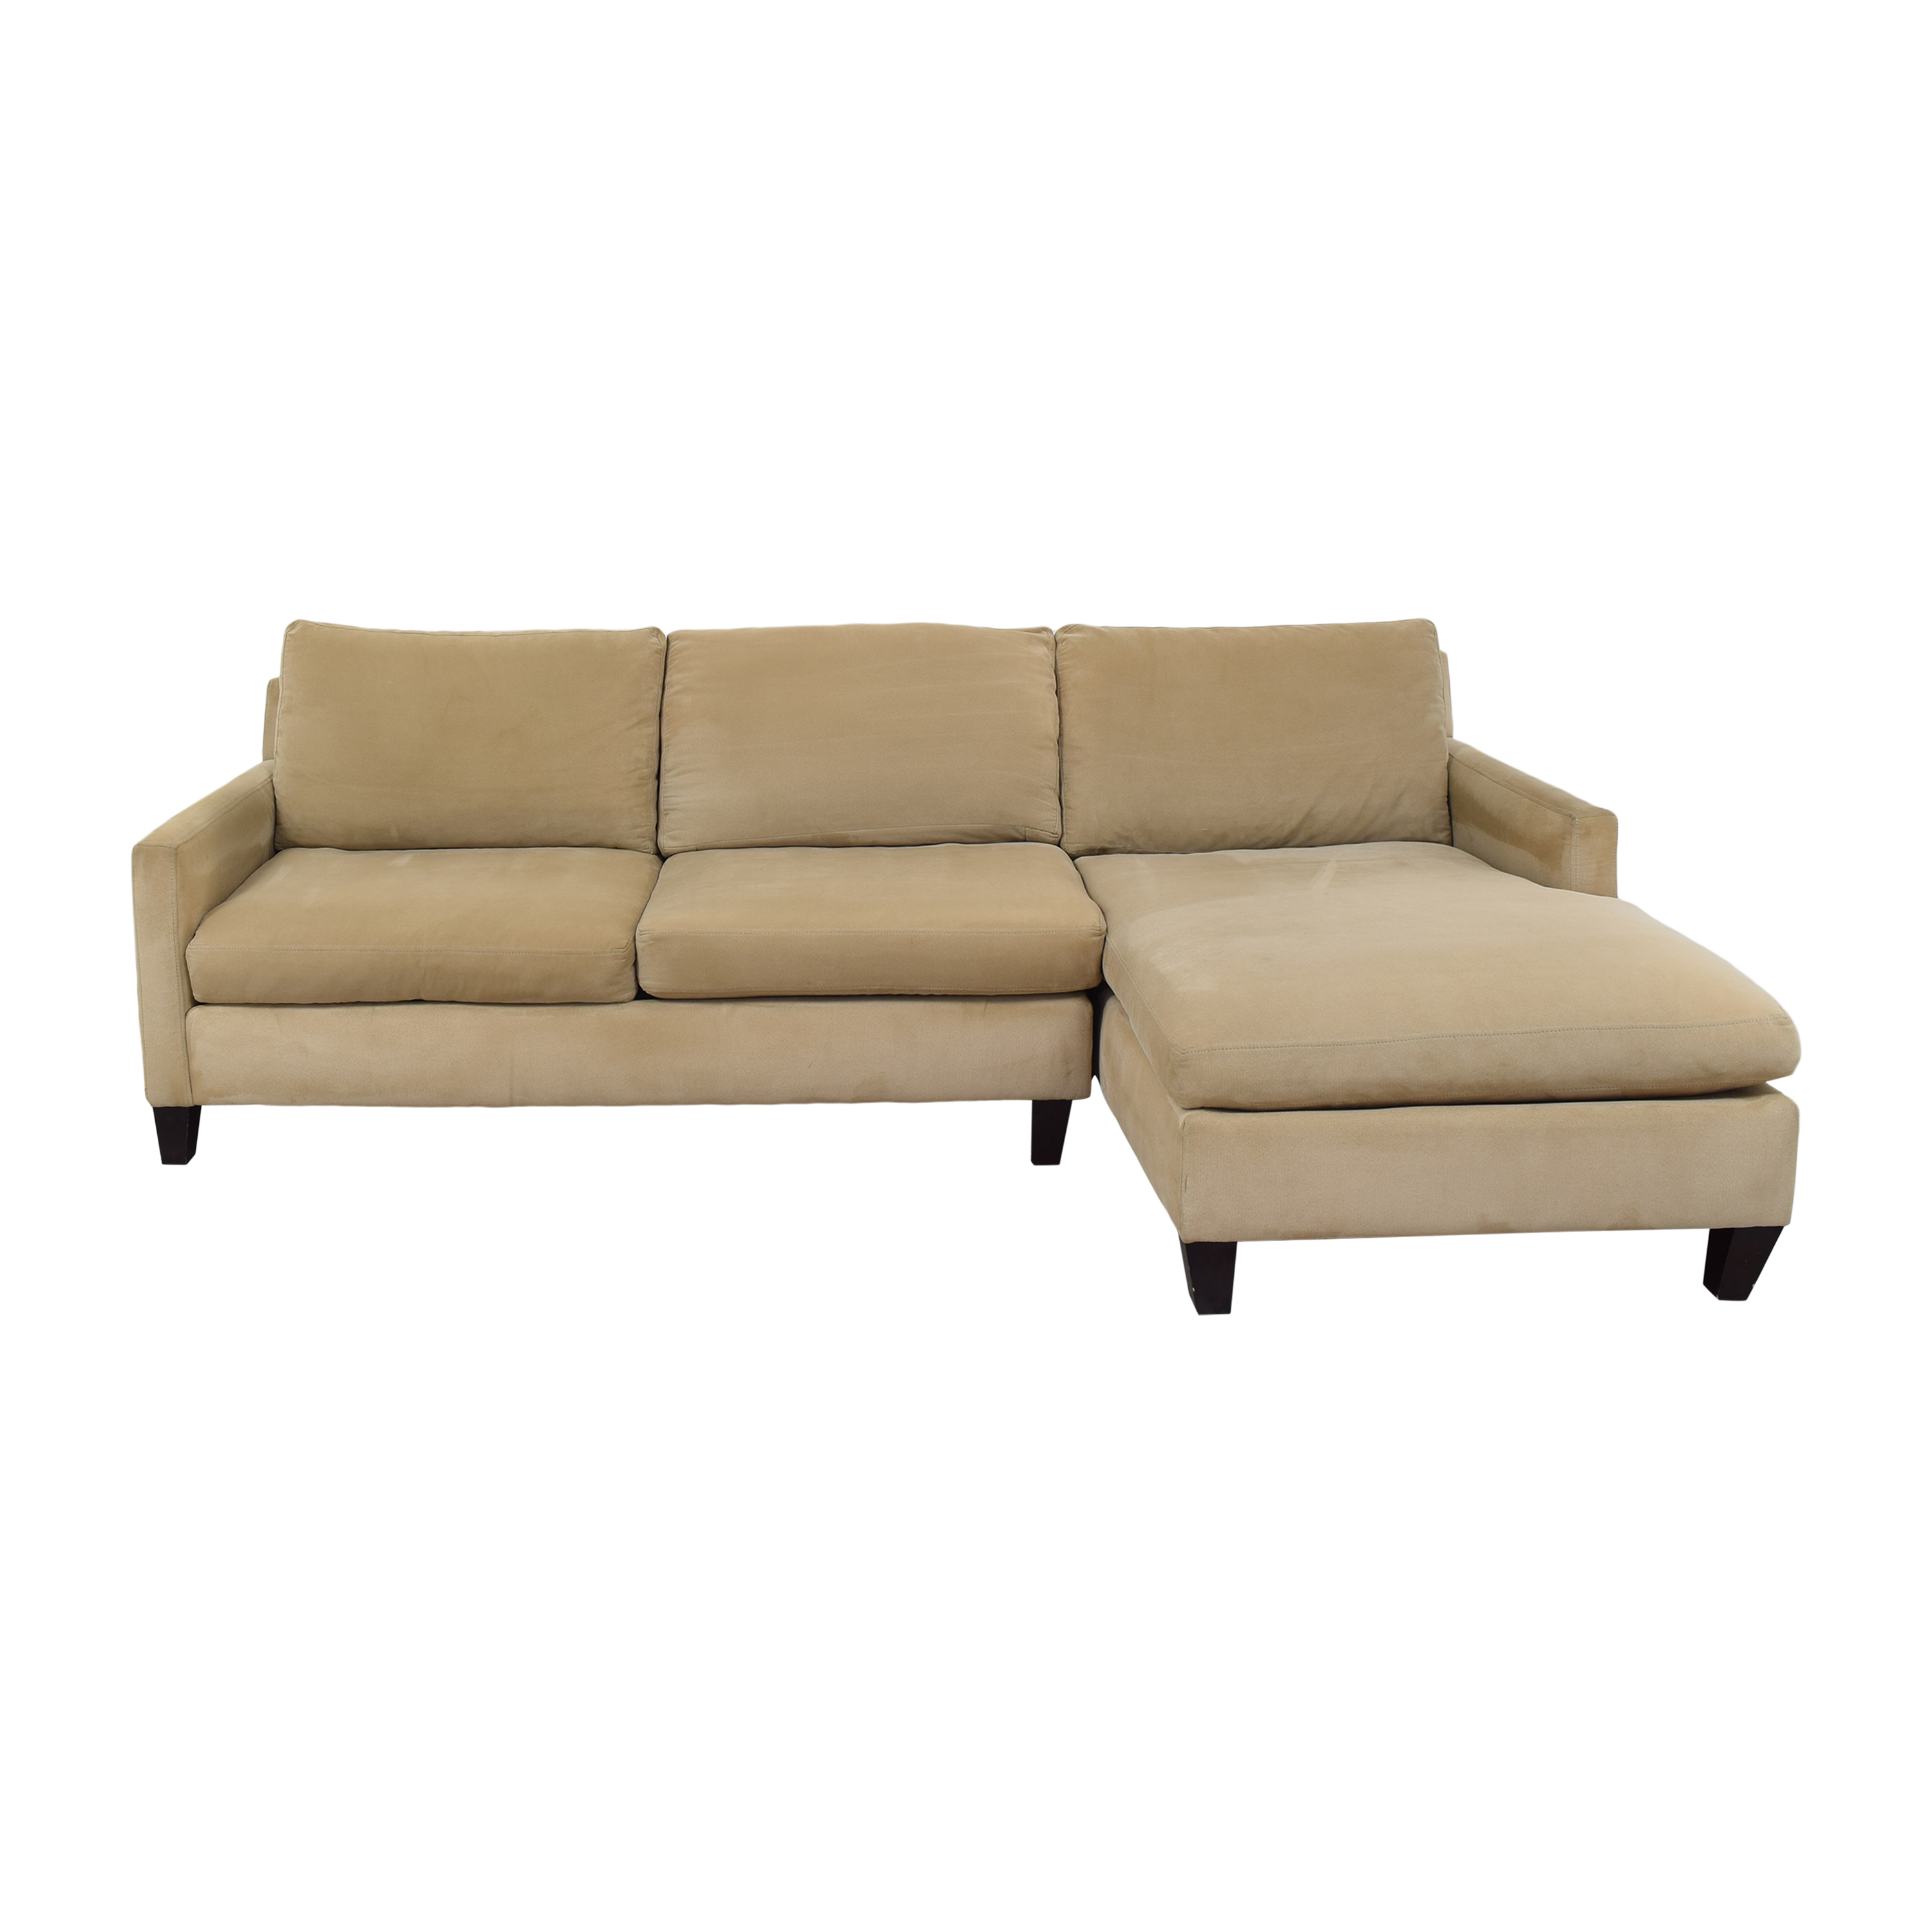 Z Gallerie Alcantara Sectional Sofa with Chaise sale